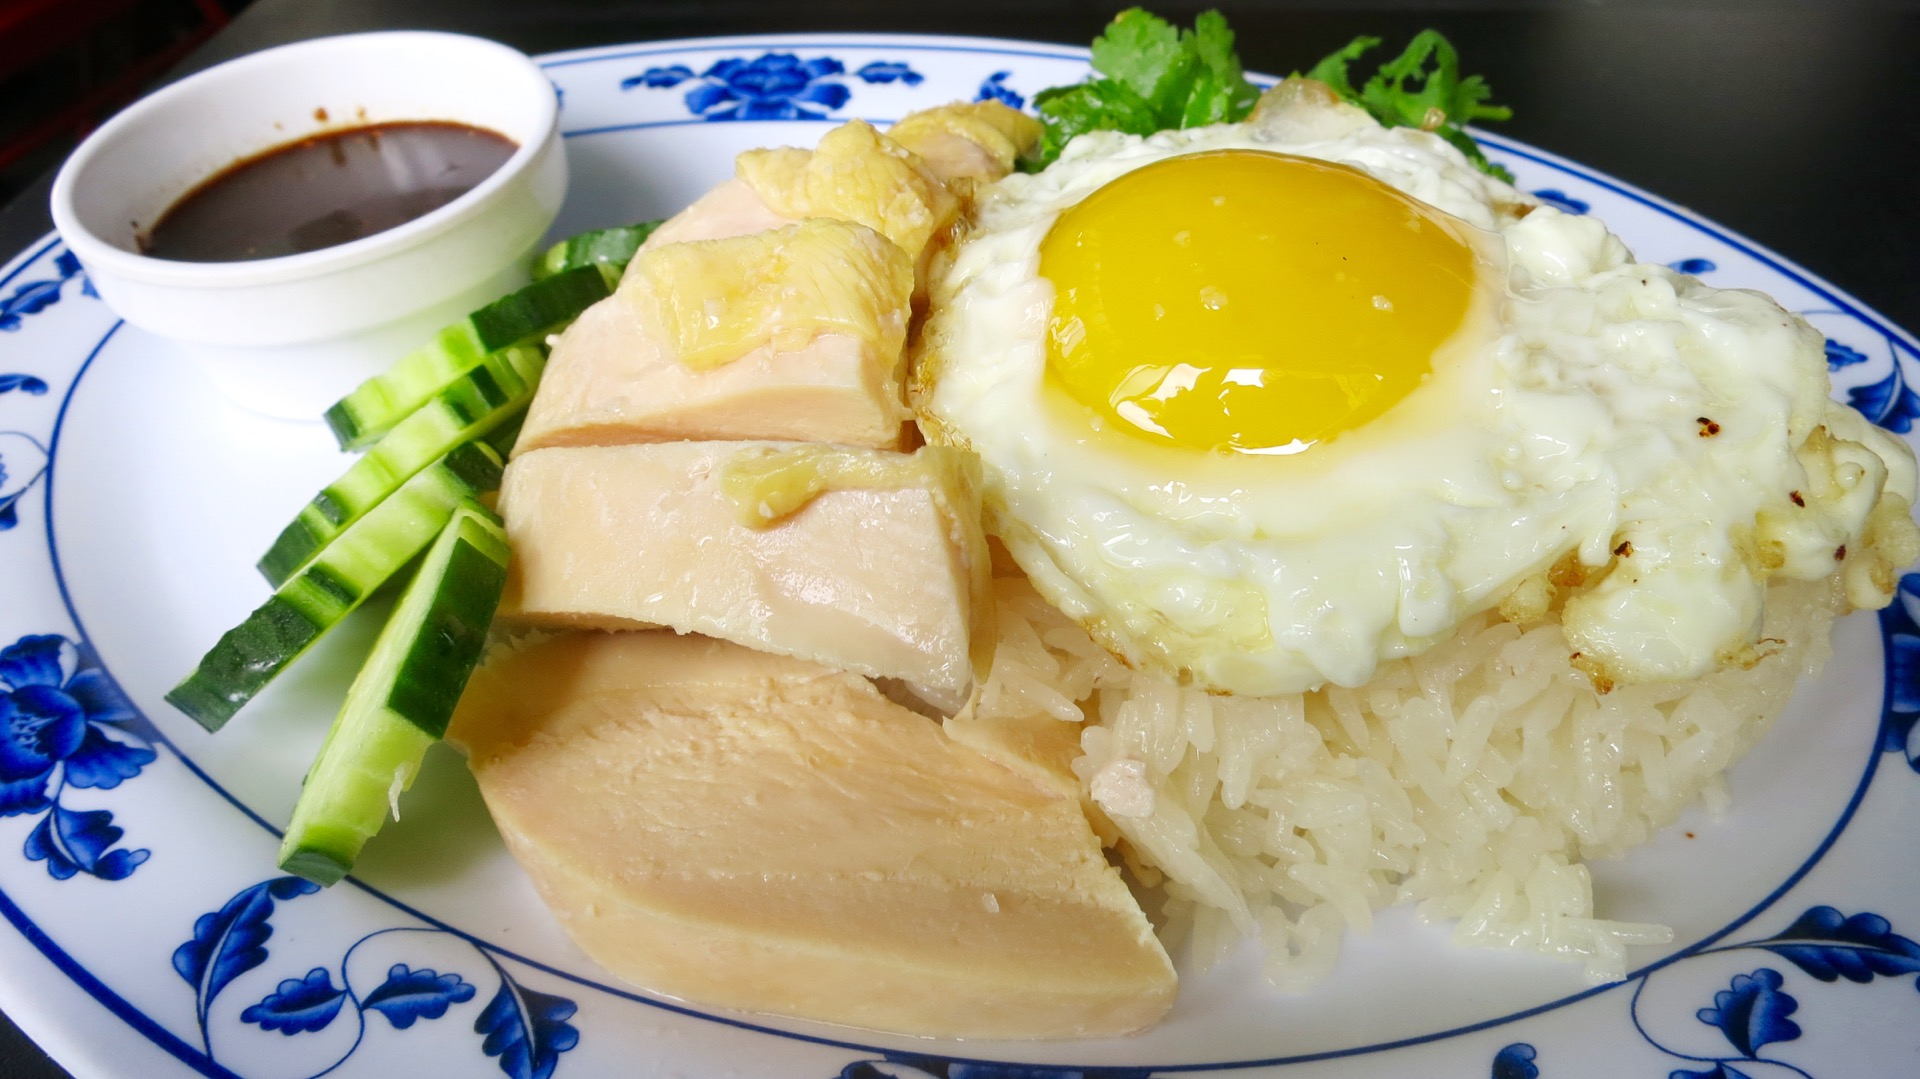 Khao mun gai is a classic Thai comfort food dish.